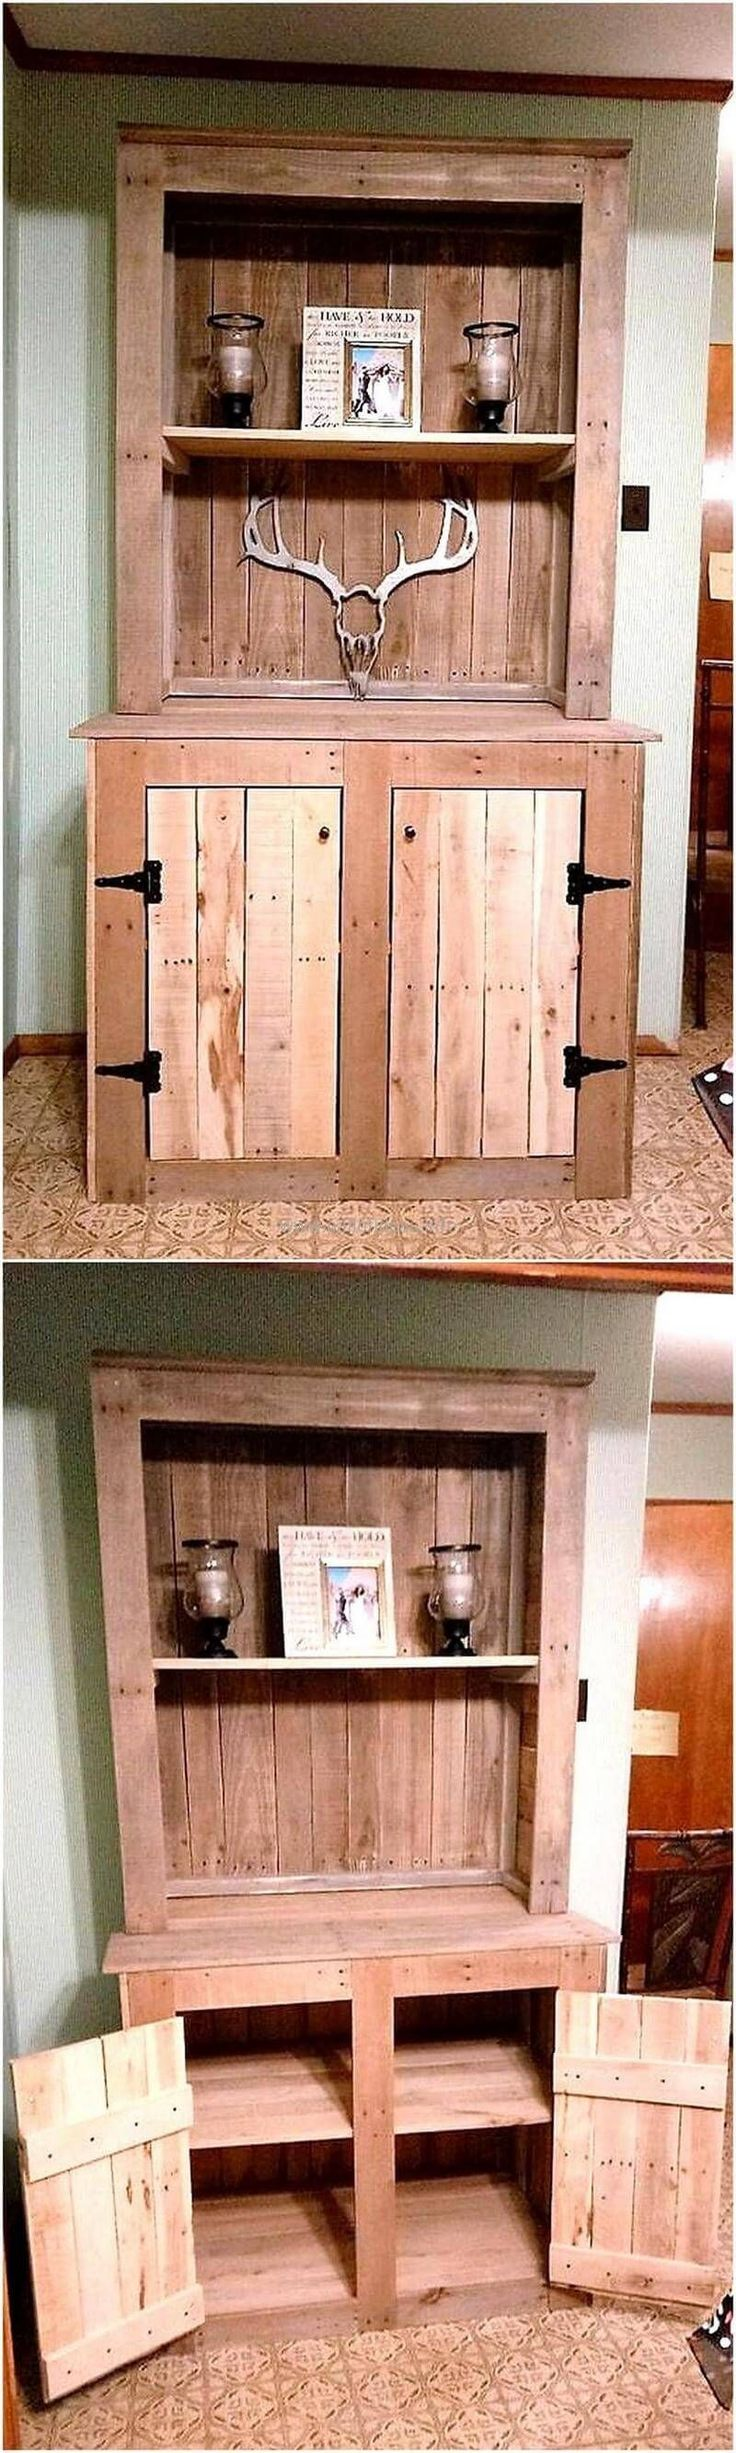 Now become a carpenter and craft these wonderful wood pallet projects on your own. These DIY motive wardrobe plans are simple and handicrafts to construct for the renovation of your home as well as to fulfill your storage needs in an economical way. The amazing thing in useless wood pallets is that they provide us #WoodProjectsDiyDecor